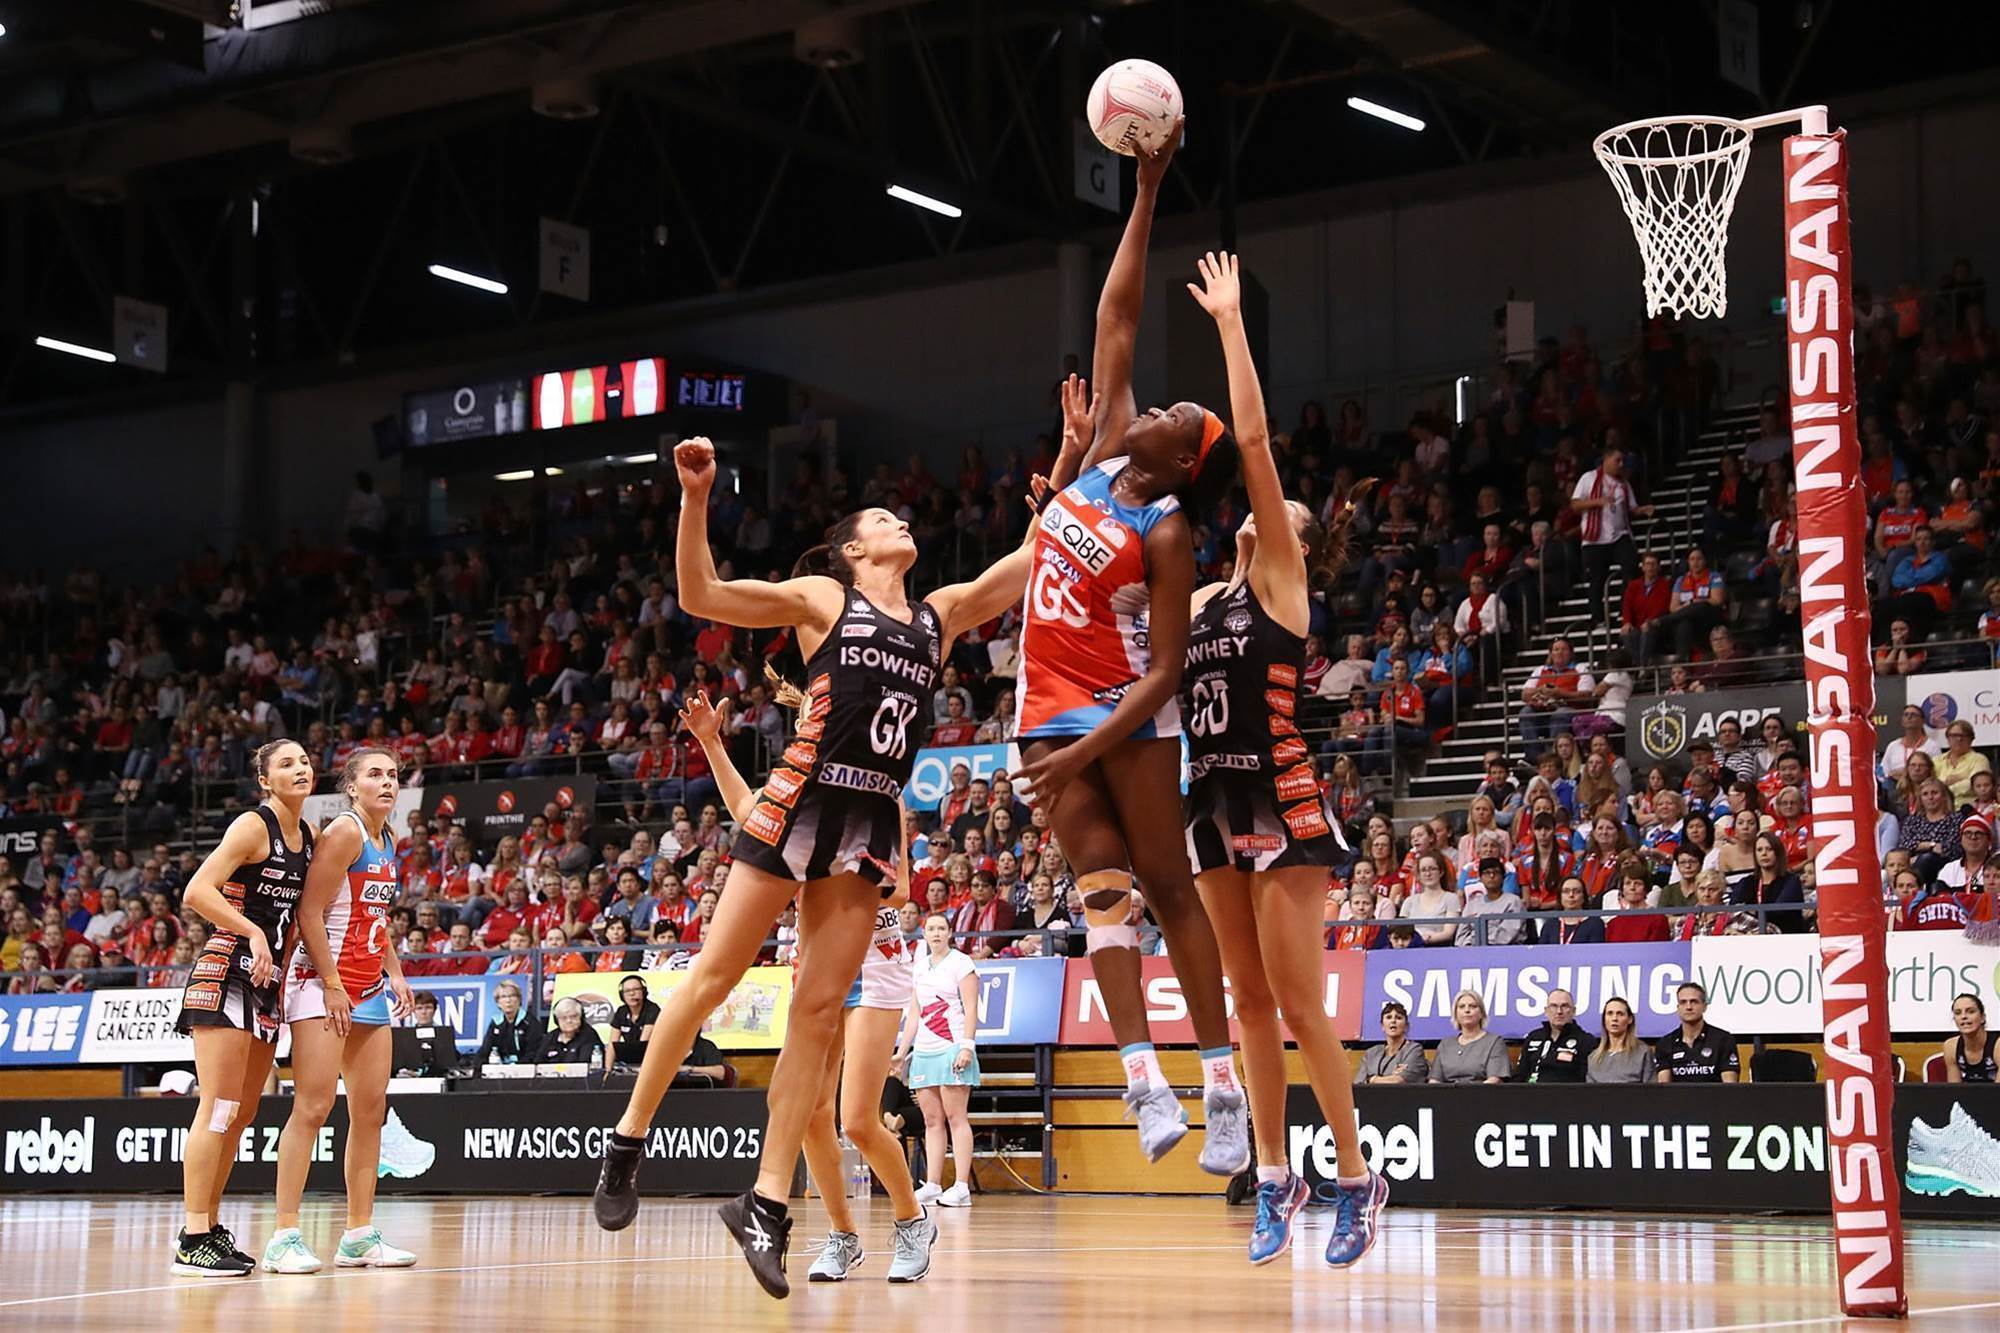 Super Netball pic special: Battles in round 4